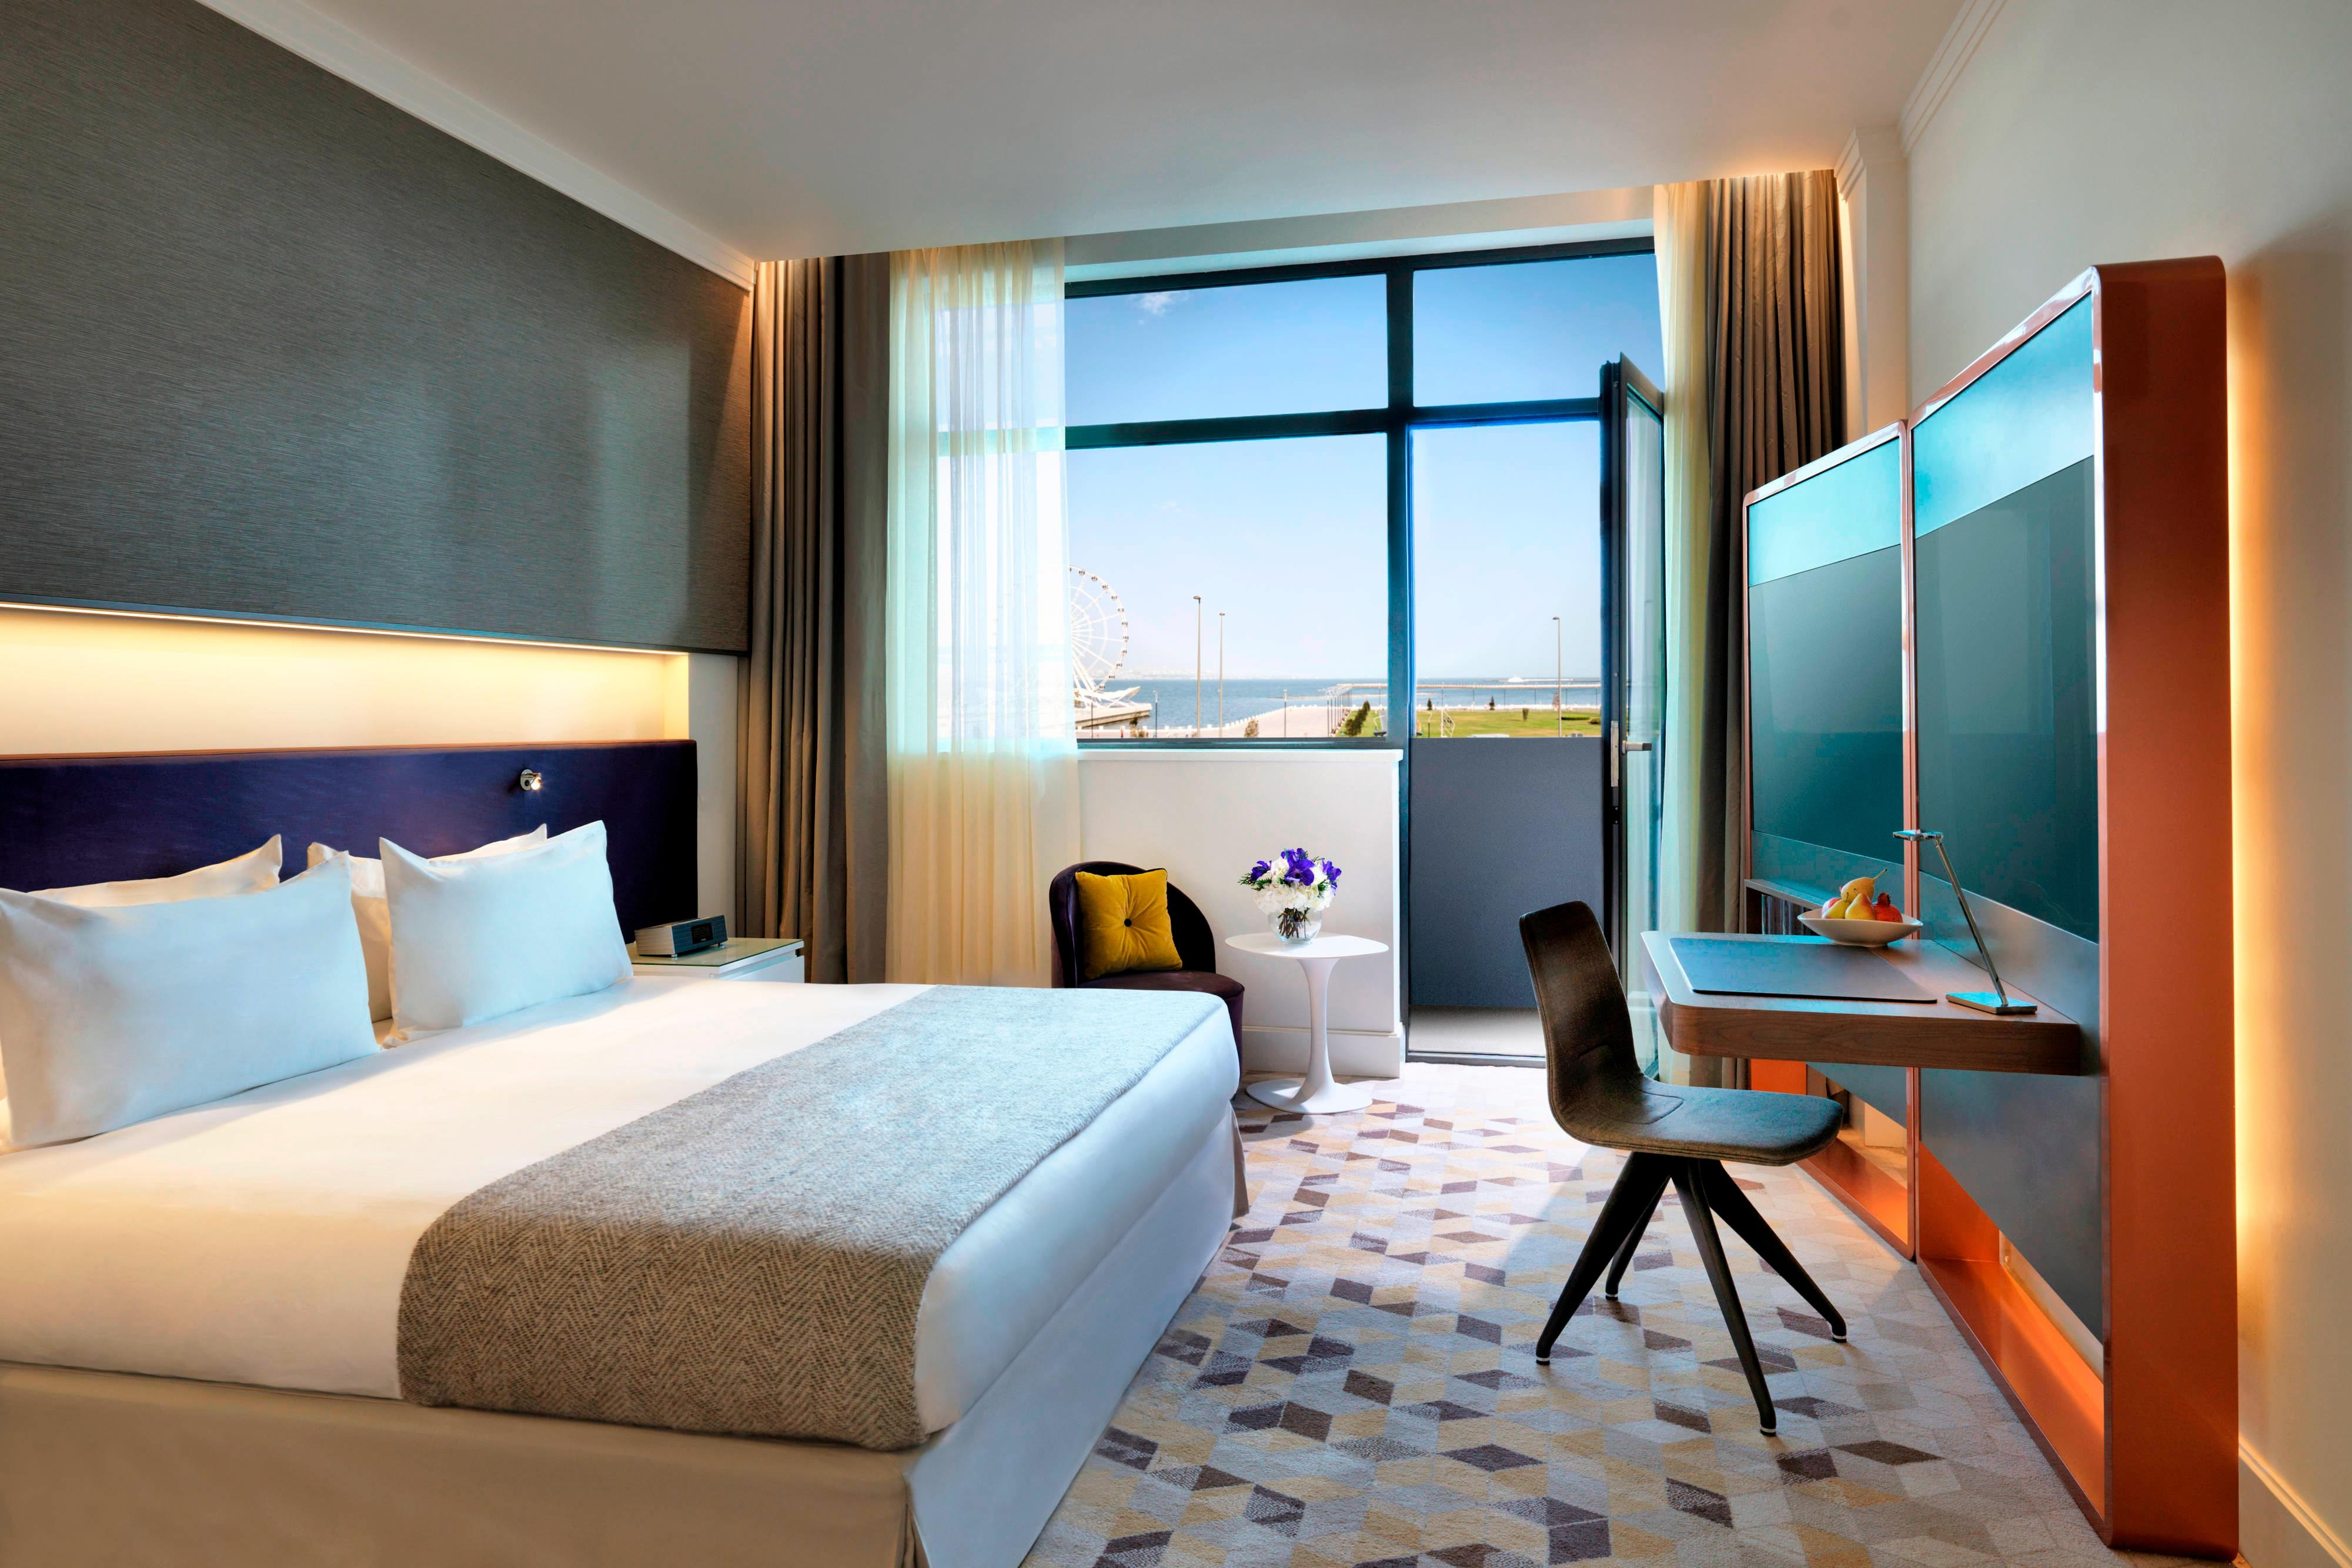 Intourist King Guest Room - Sea View